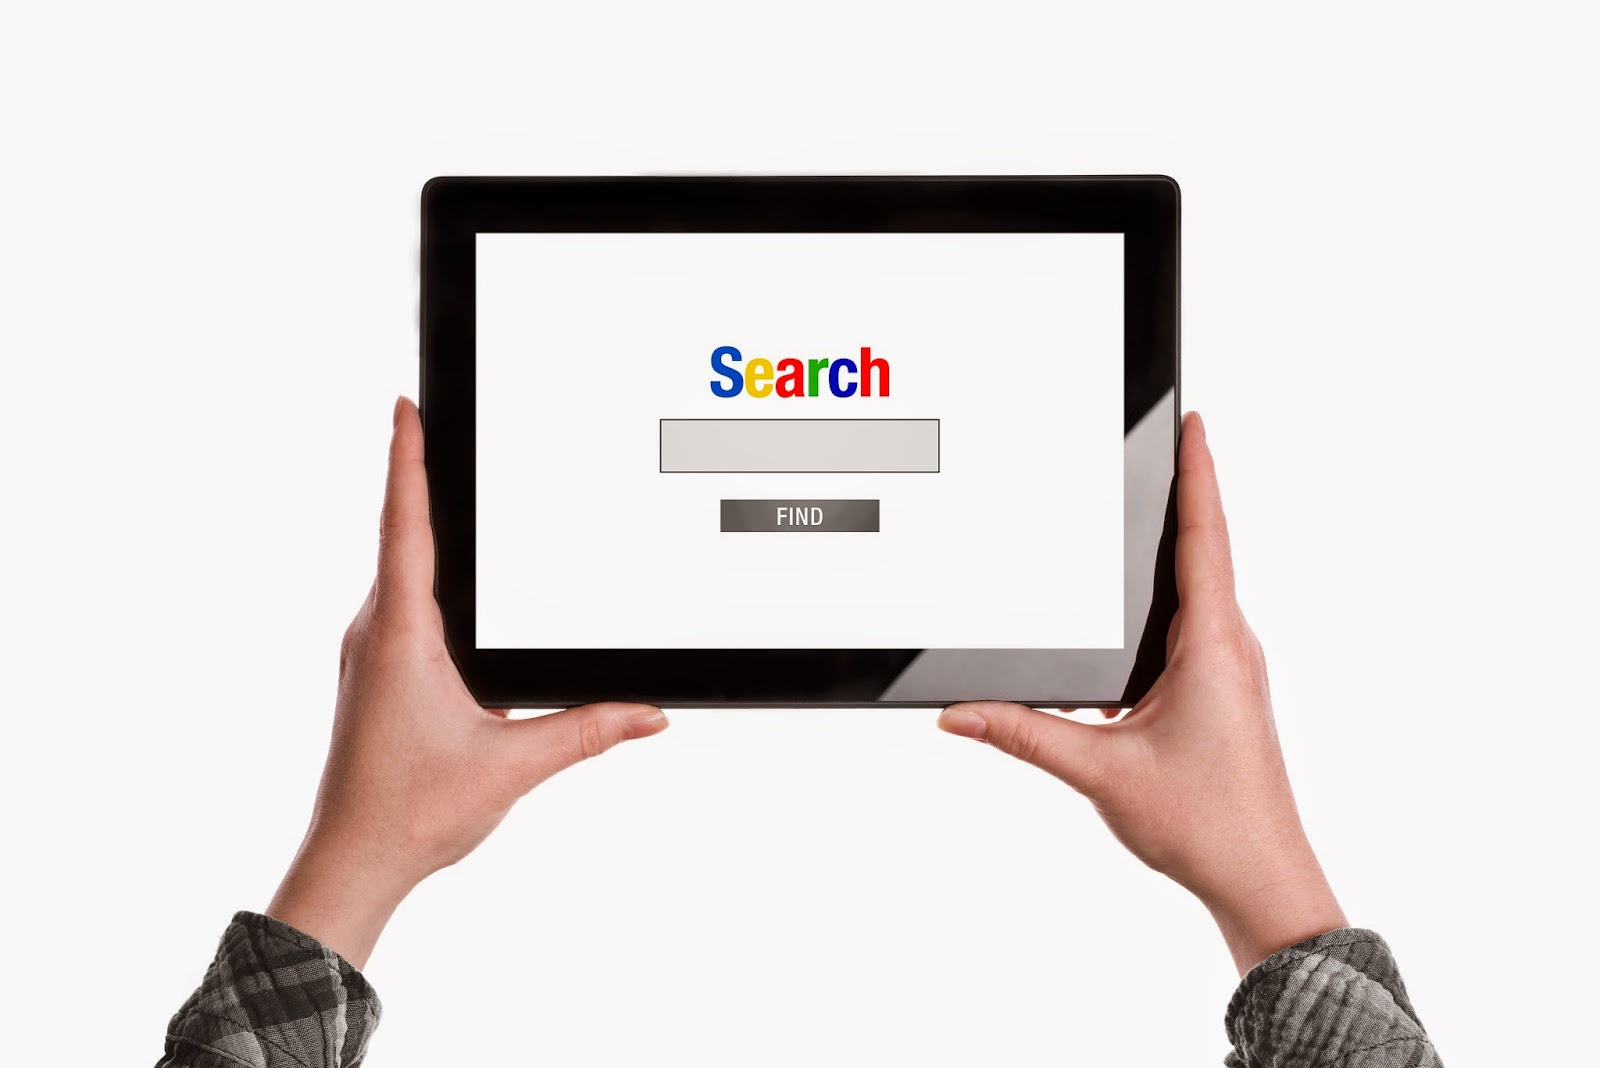 Mobile Search Spend Continues to Grow in the US 1